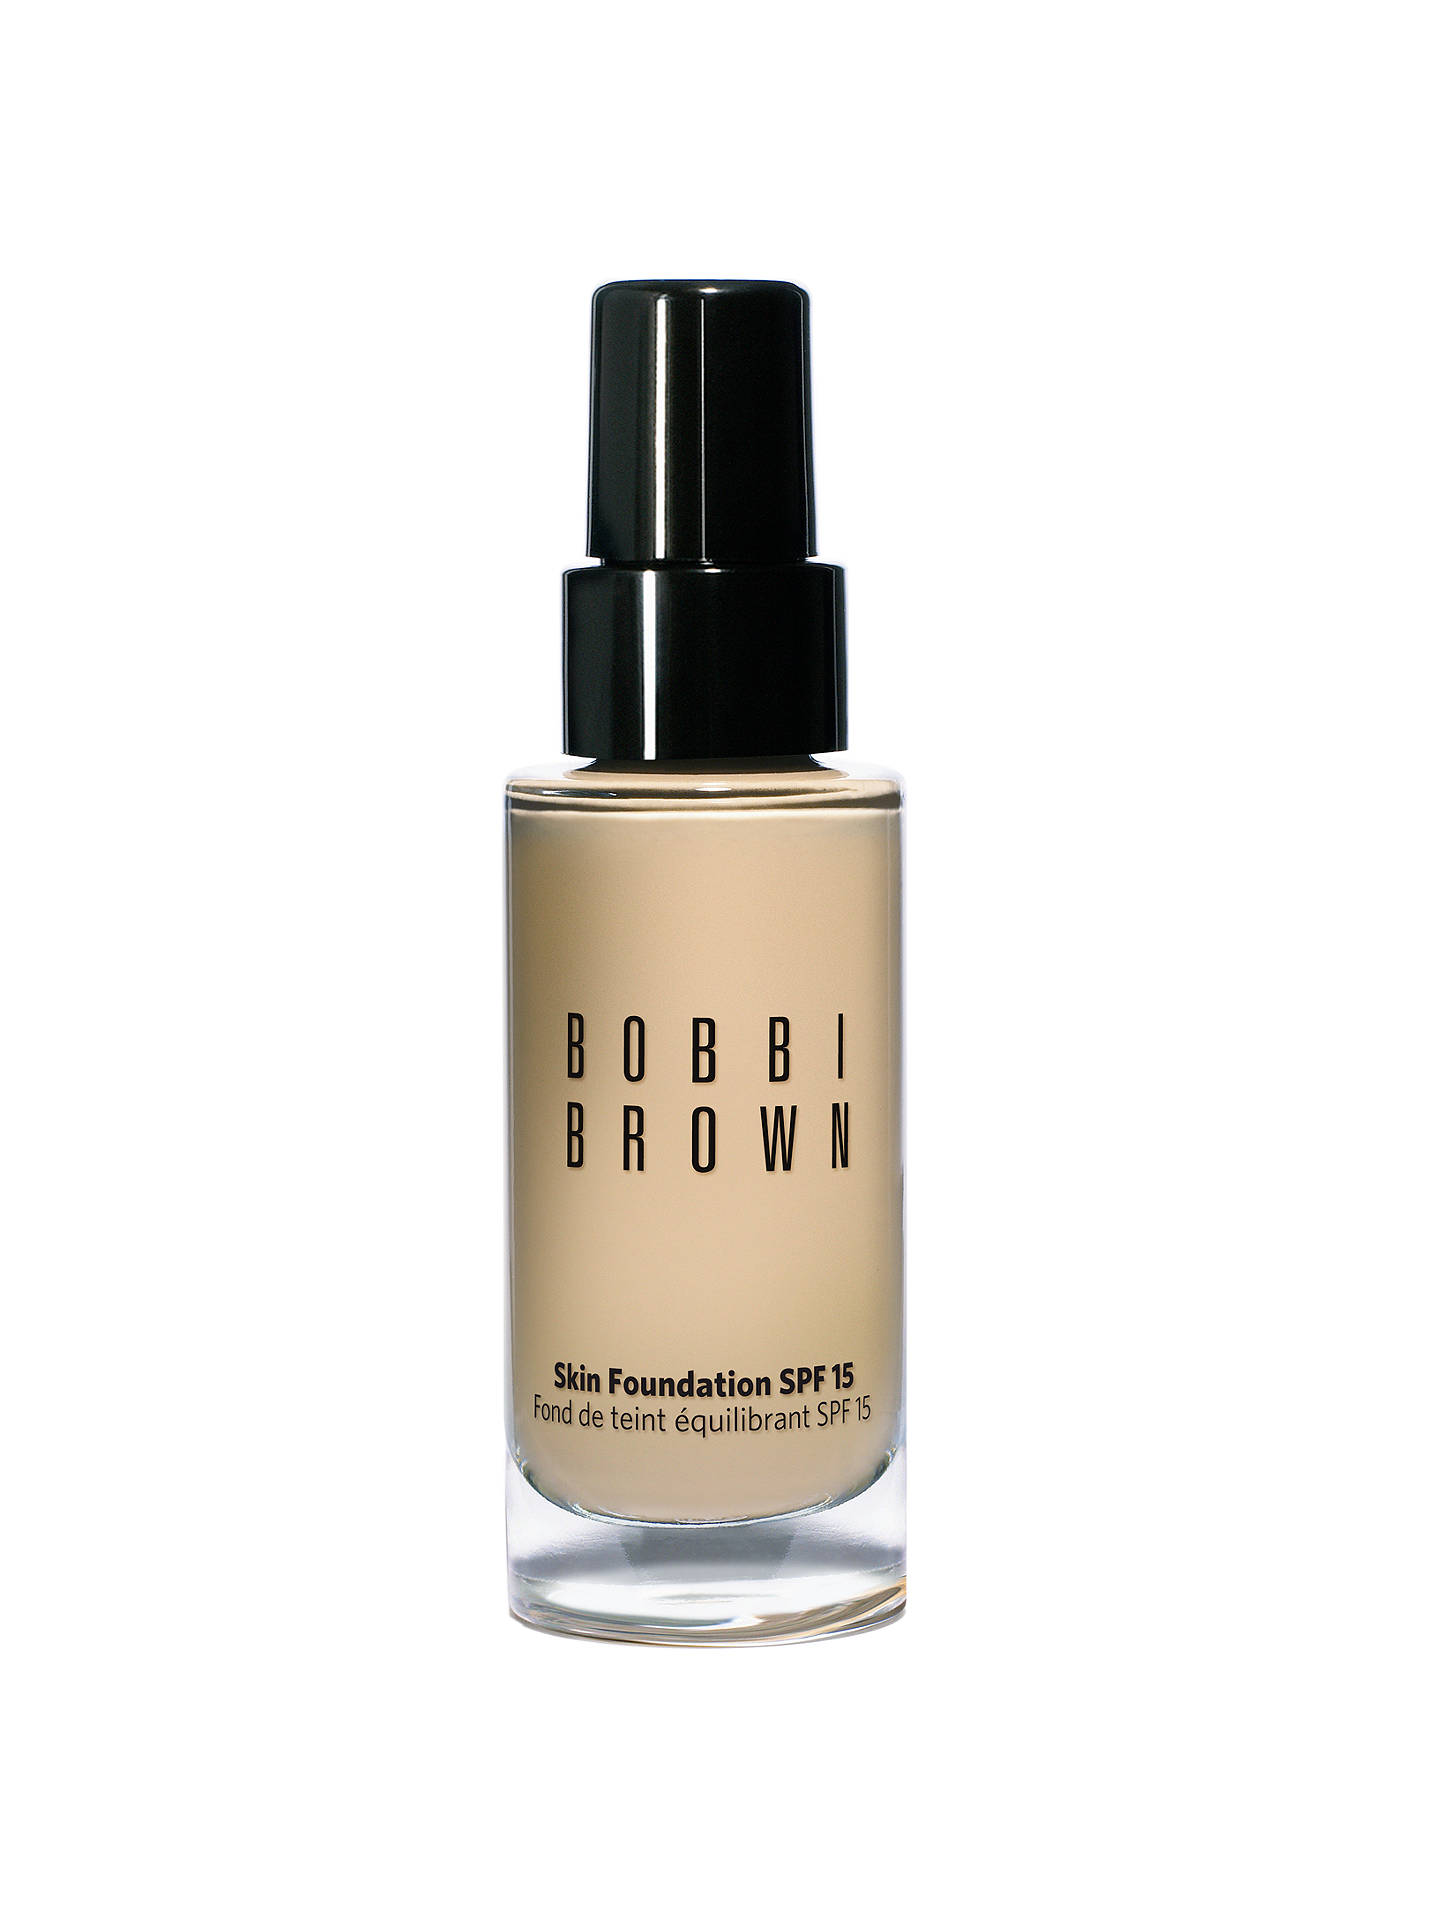 Buy Bobbi Brown Skin Foundation SPF15, Chestnut 9 Online at johnlewis.com